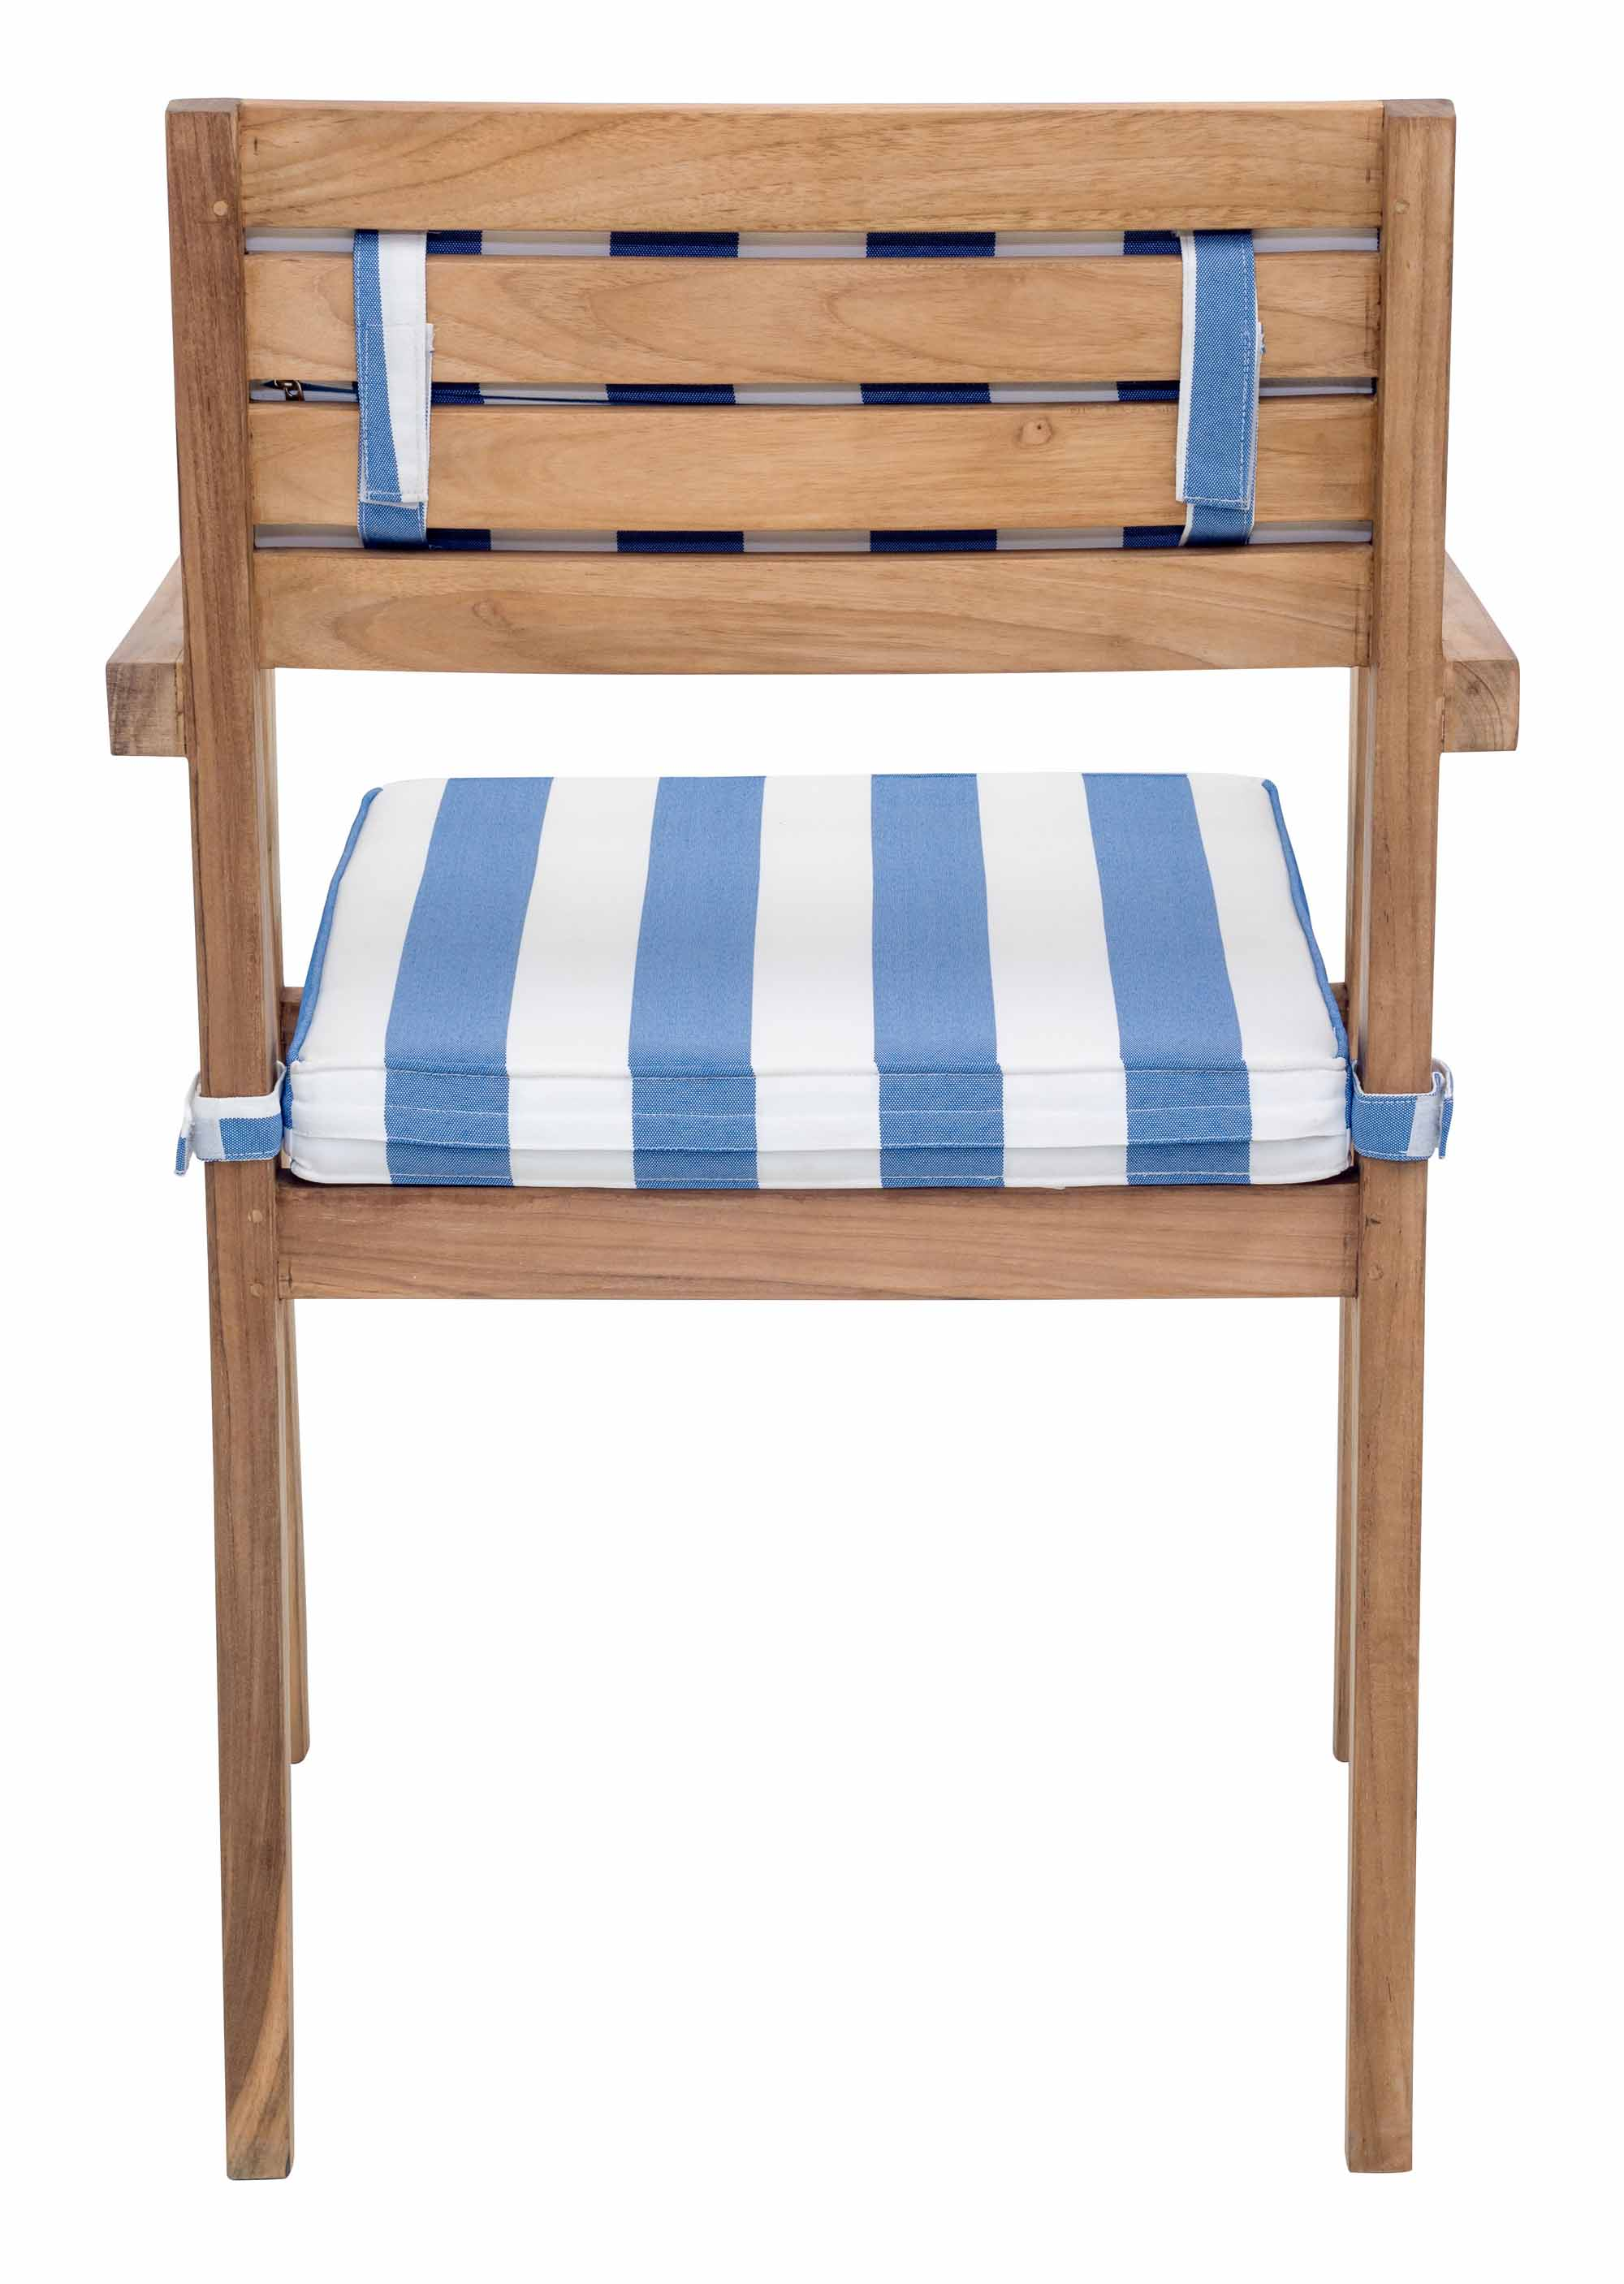 Nautical Chair Back Cushion Blue amp White Set of 2 by Zuo  : 703557703567703568 4 from www.functionalfurniturenyc.com size 2000 x 2813 jpeg 268kB